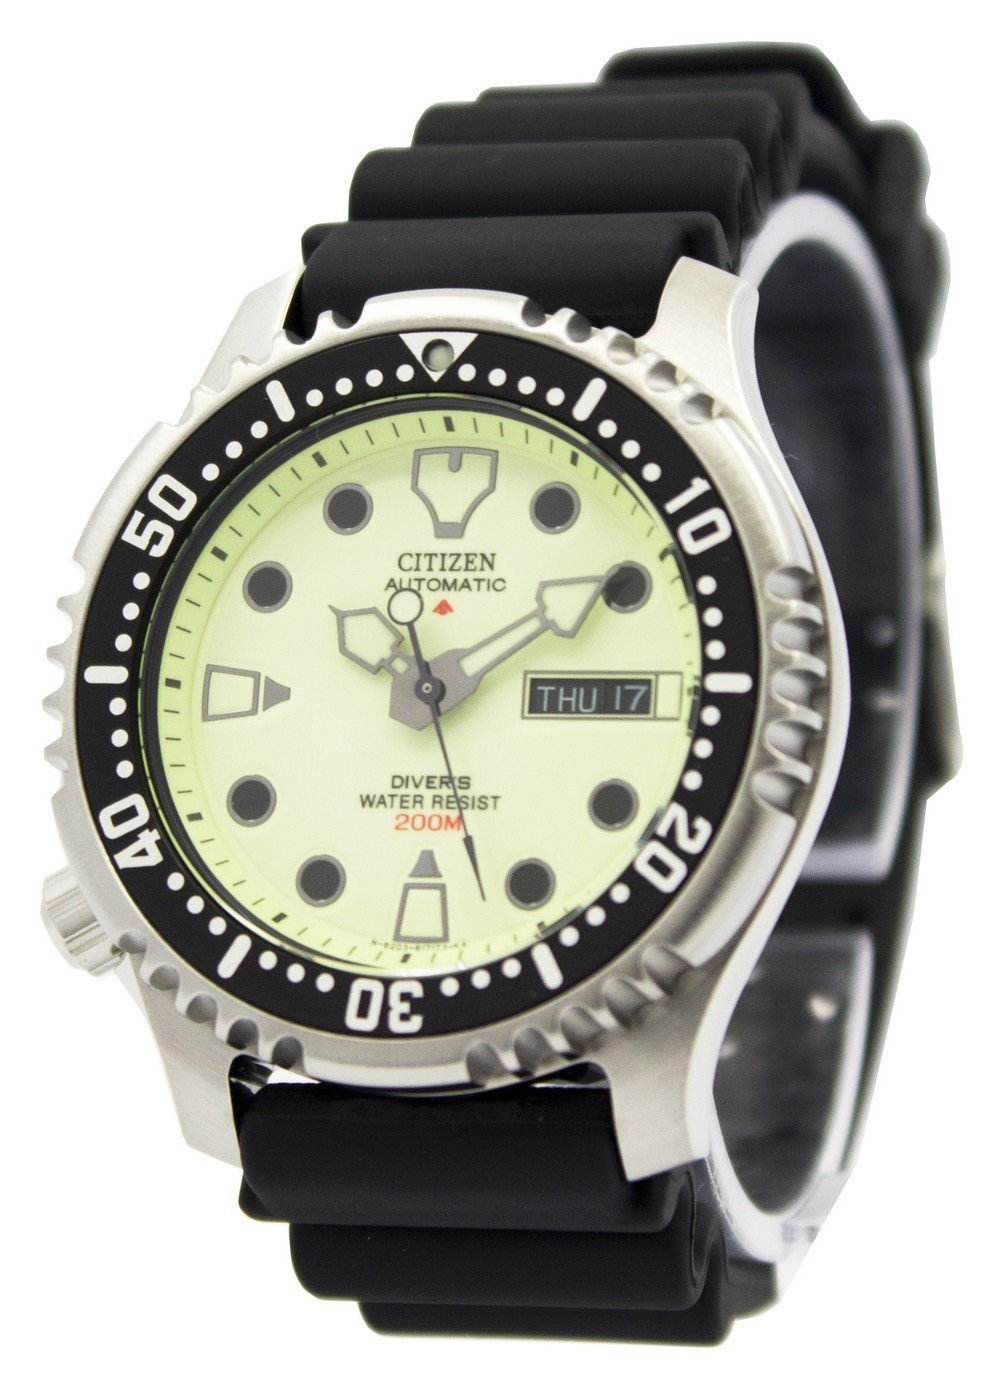 Citizen Promaster Automatic Diver's NY0040-09W Men's Watch